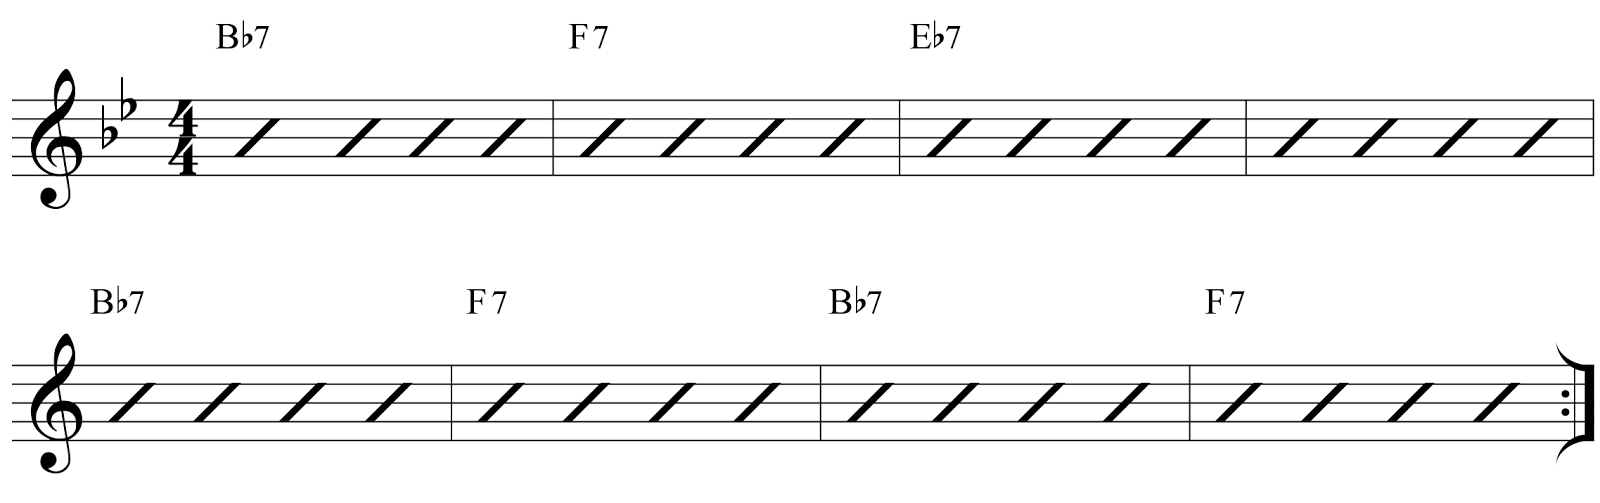 Creative guitar studio so lets break down the chords and their order sequence across the 8 bar blues progression hexwebz Gallery